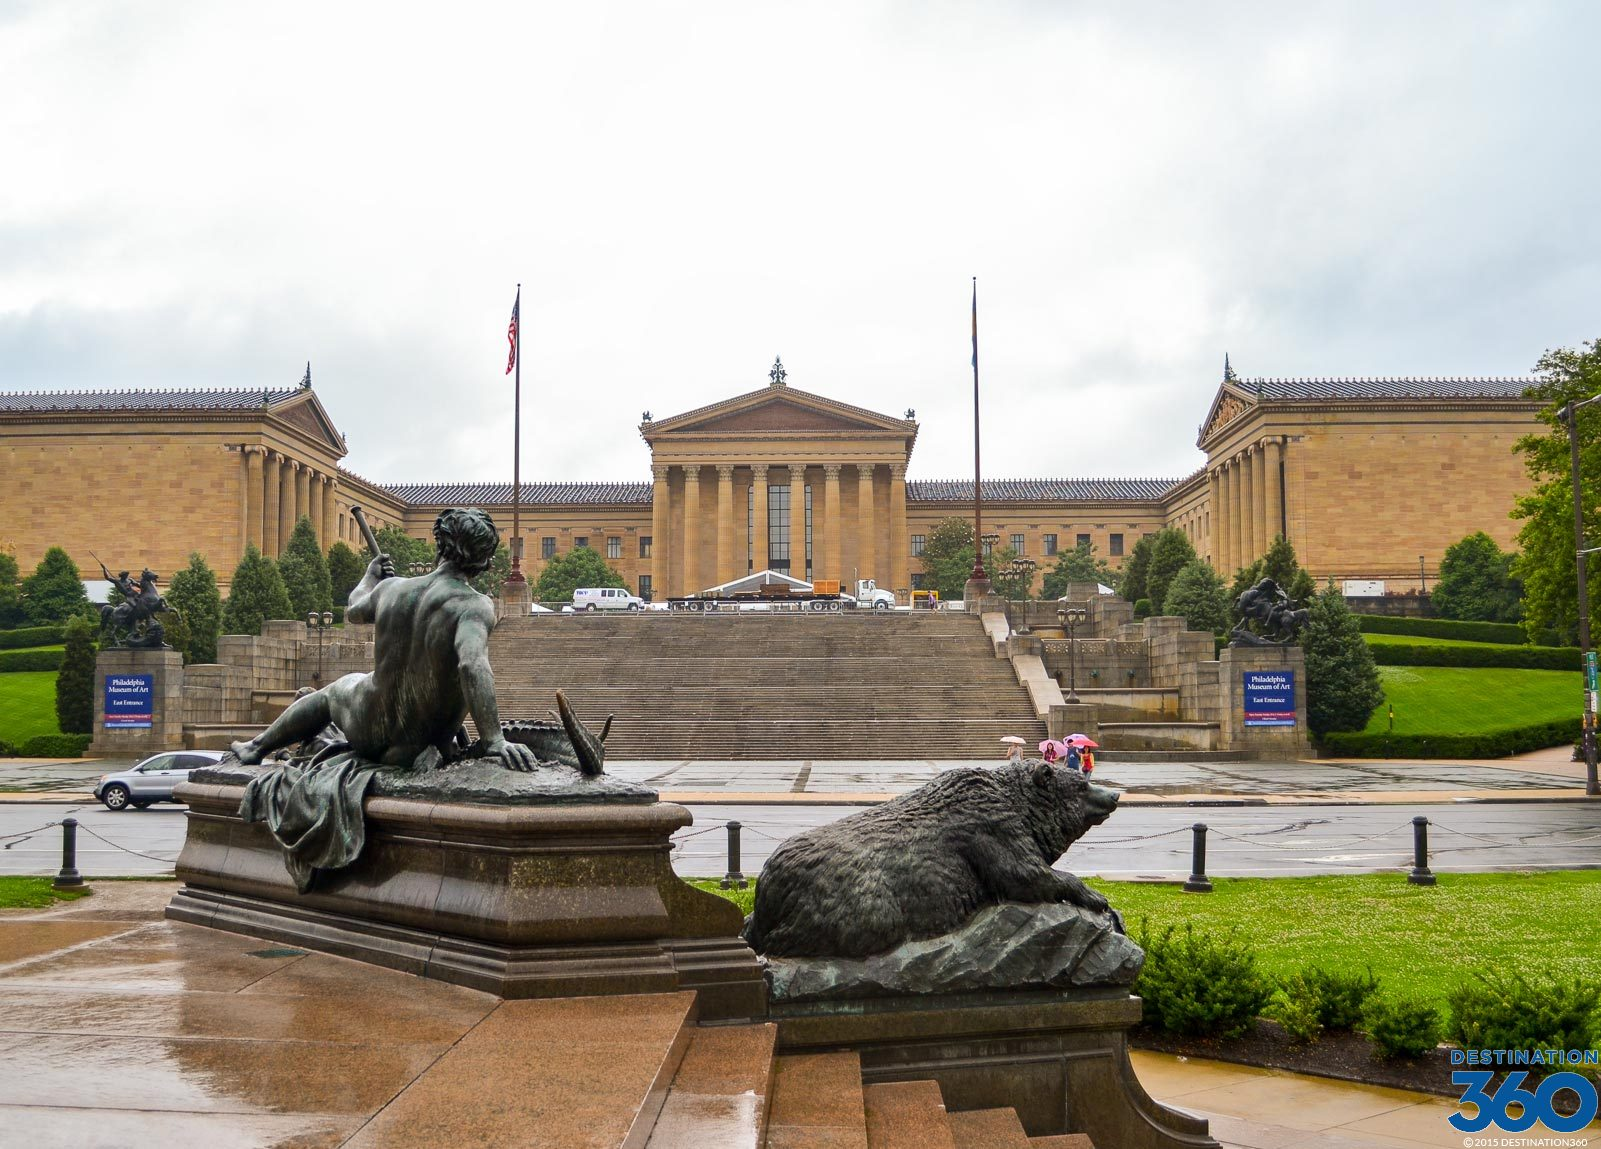 Philadelphia museum of art philadelphia museum of art show for Craft fair in philadelphia pa